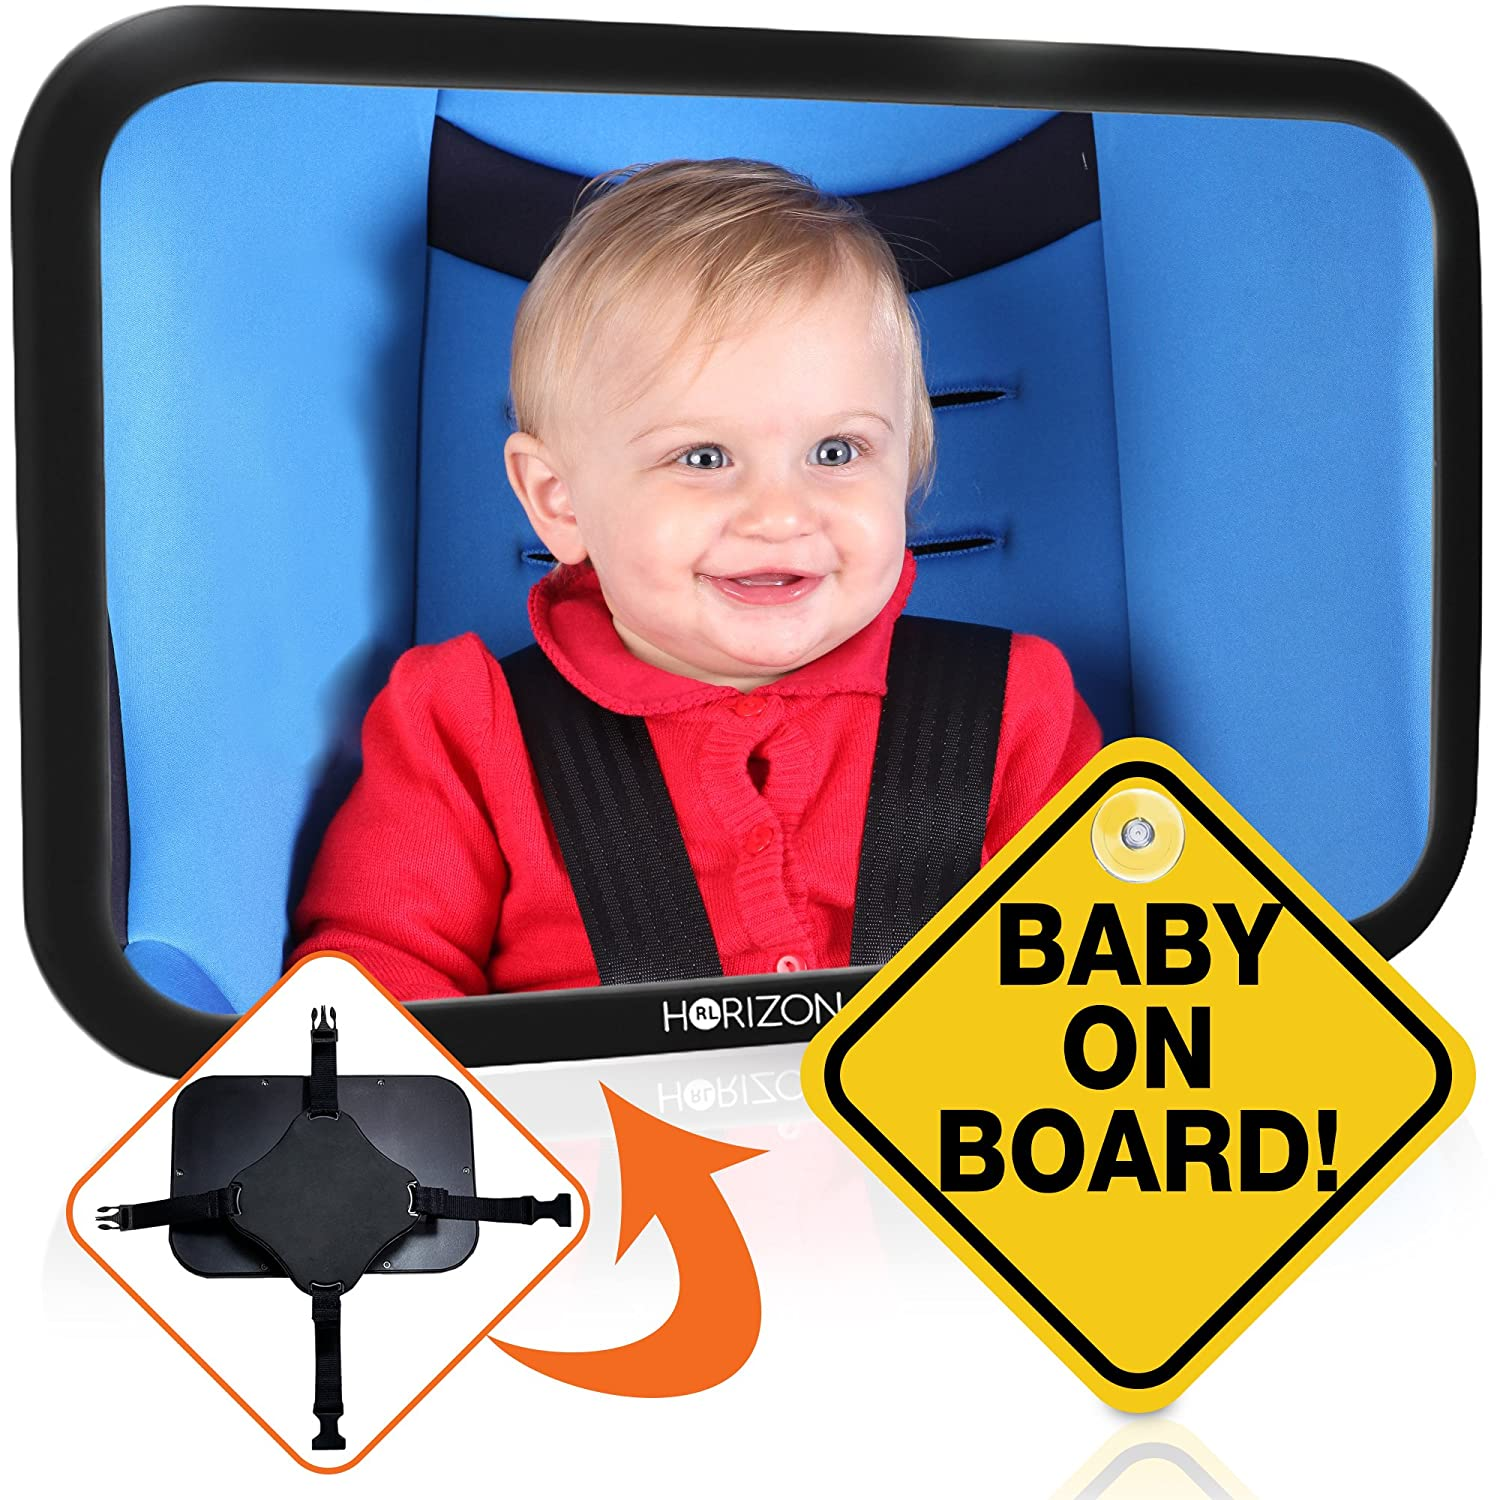 Premium Infant Carseat Mirror & Baby on Board Sign: View Backseat Without Risk! Headrest Mirrors for Parents in the Drivers Seat to See Their Kids in the Rear Seats. Car Travel Head Rest Accessories RL HORIZON